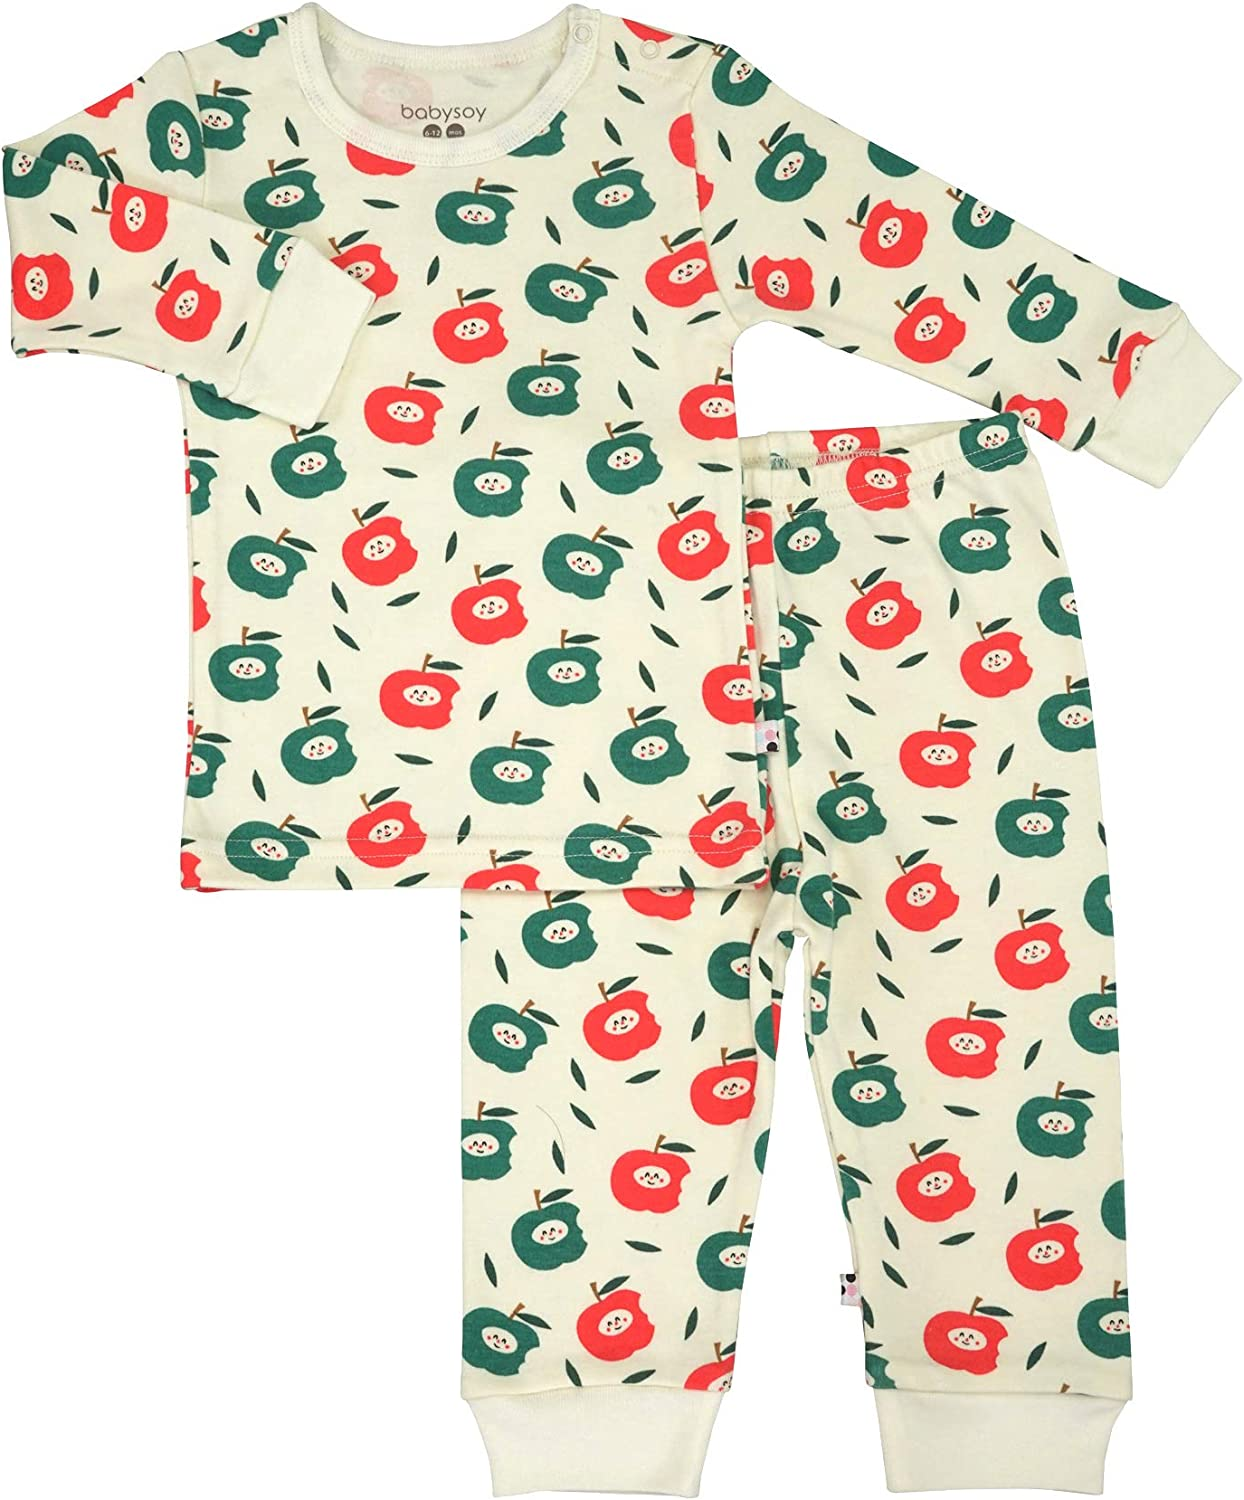 Babysoy Long Sleeve Unisex Lounge Set - Organic 2-Piece PJ Playwear Sets for Baby and Toddler